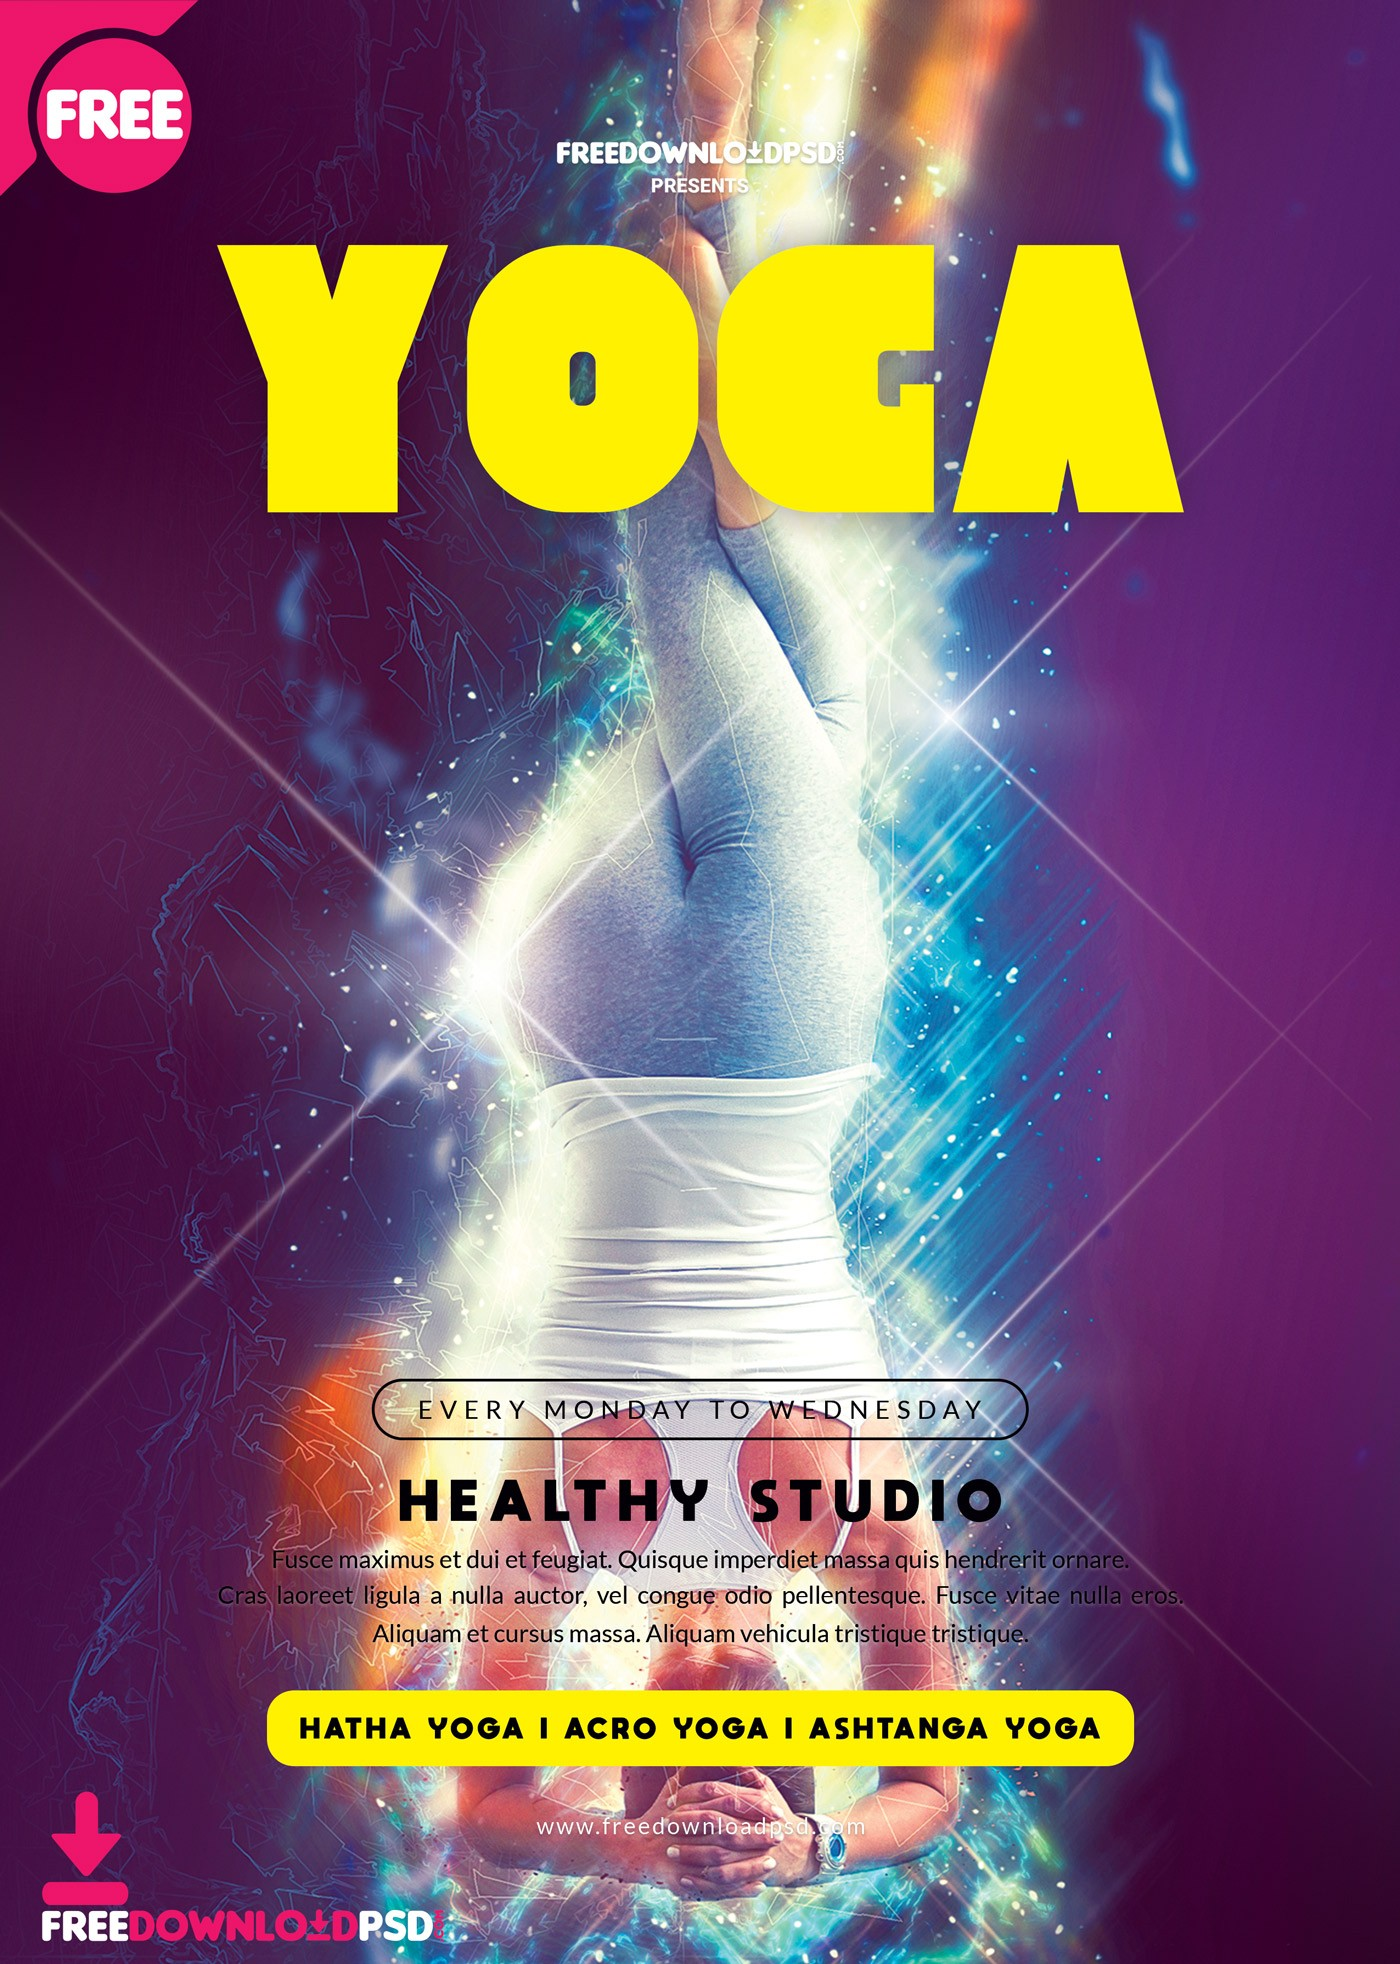 Free Yoga Flyer Template PSD